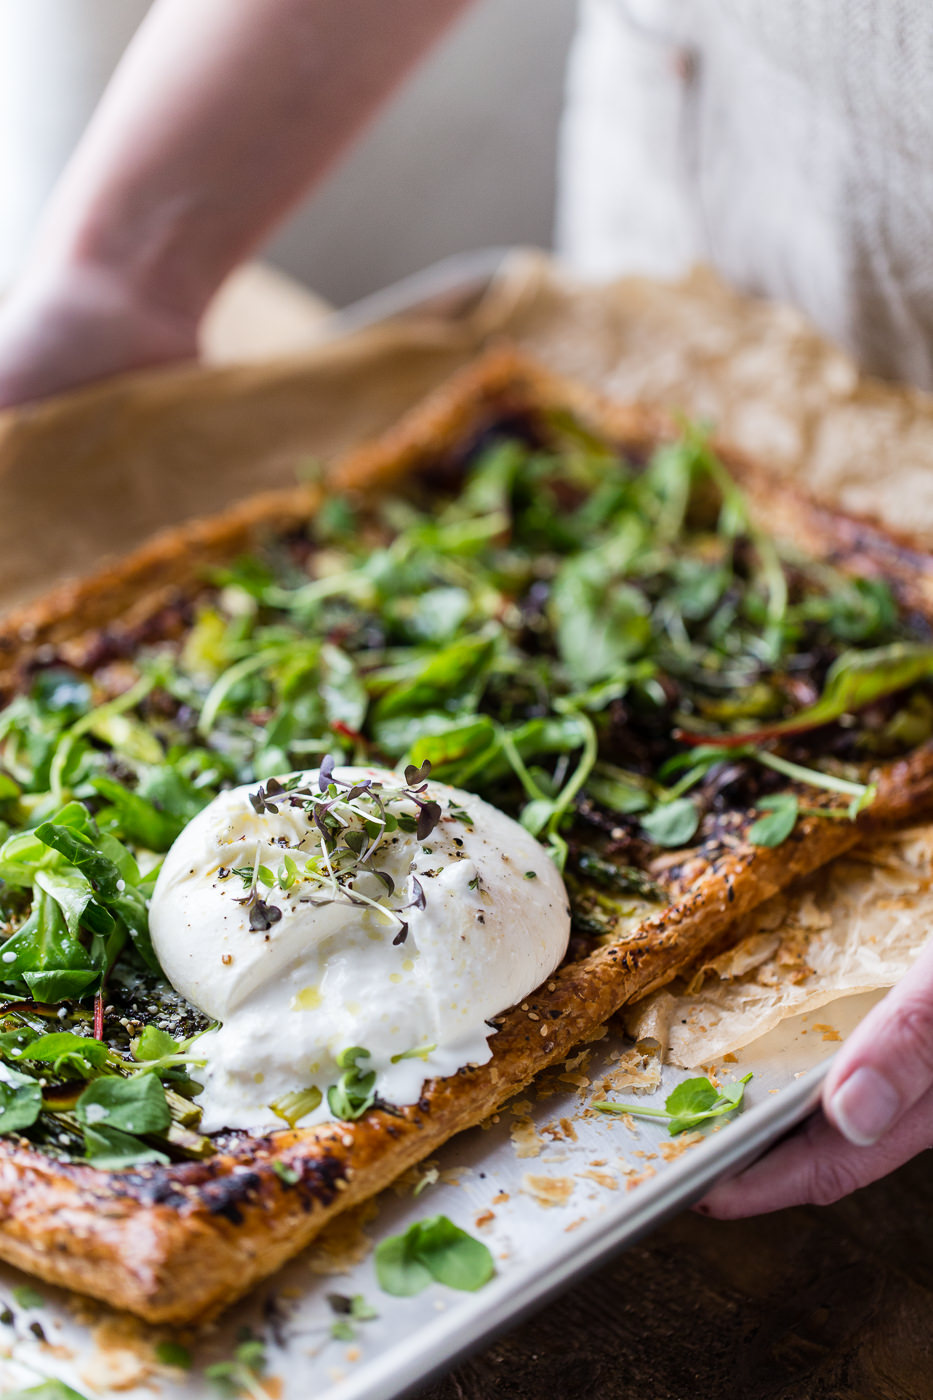 A baking tray, being held by someone, with parchment paper and a roasted vegetable, puff pastry tart with green micro herbs and a full round burrata cheese which has been cut open and is oozing out